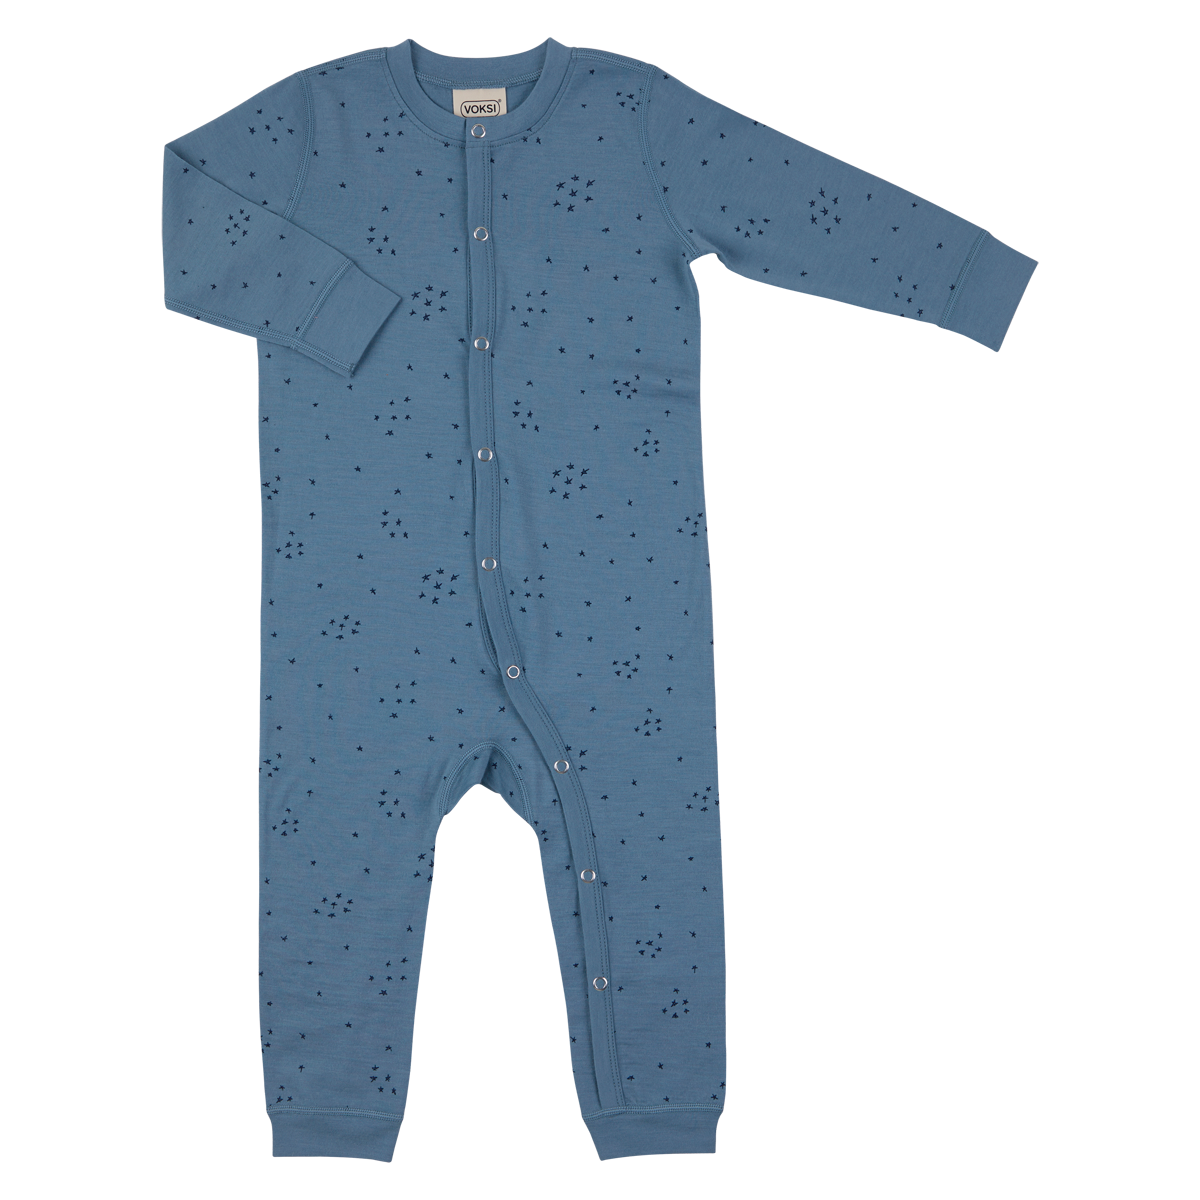 Voksi meriinovillane jumpsuit Blue Star